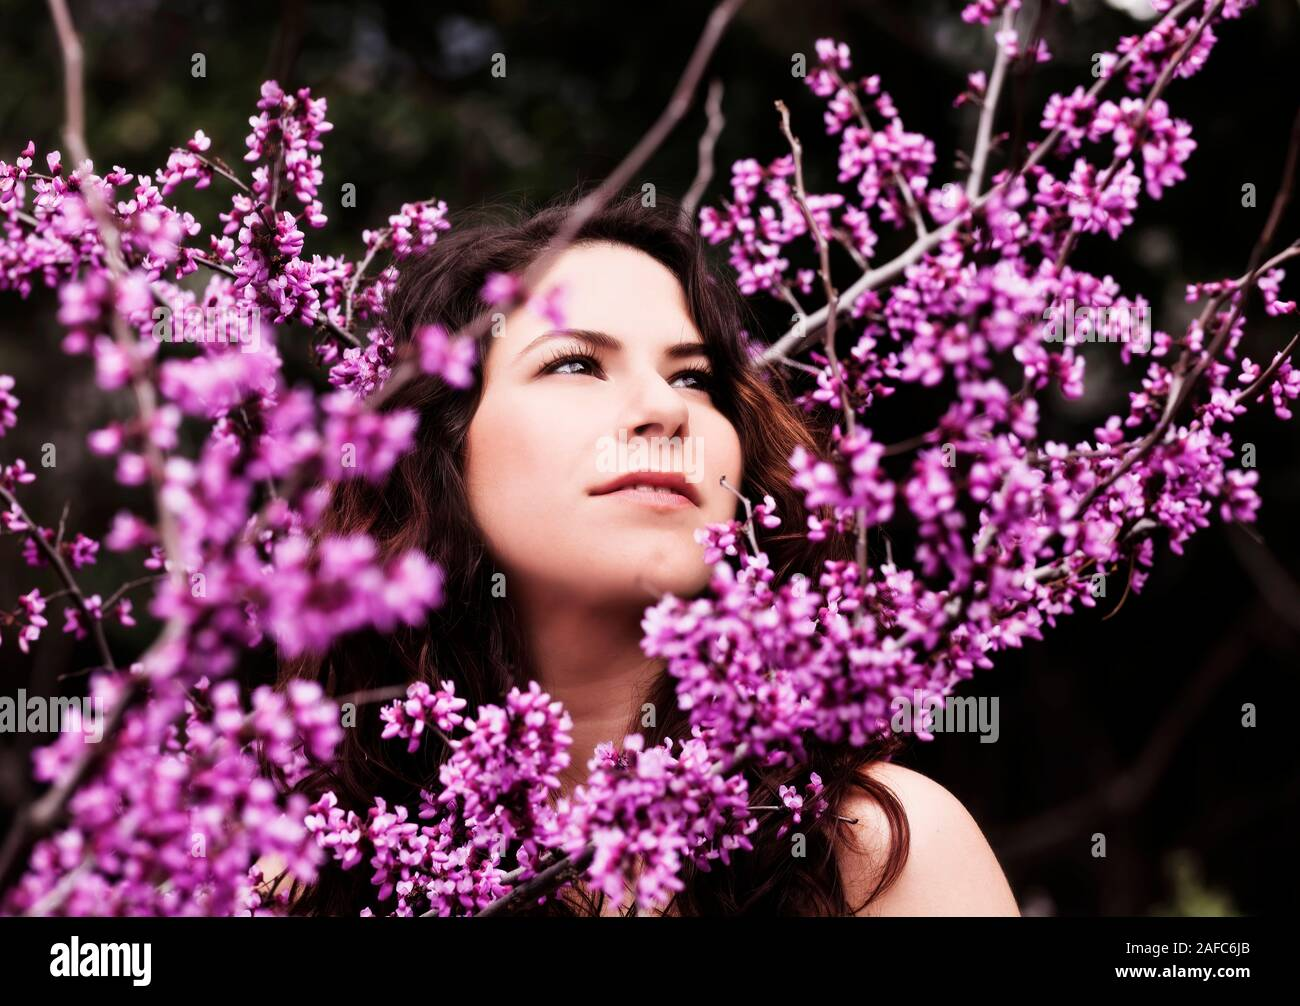 Attractive Young Caucasian Woman Outdoor Portrait Standing Amid Red Bud Tree Blossoms Stock Photo